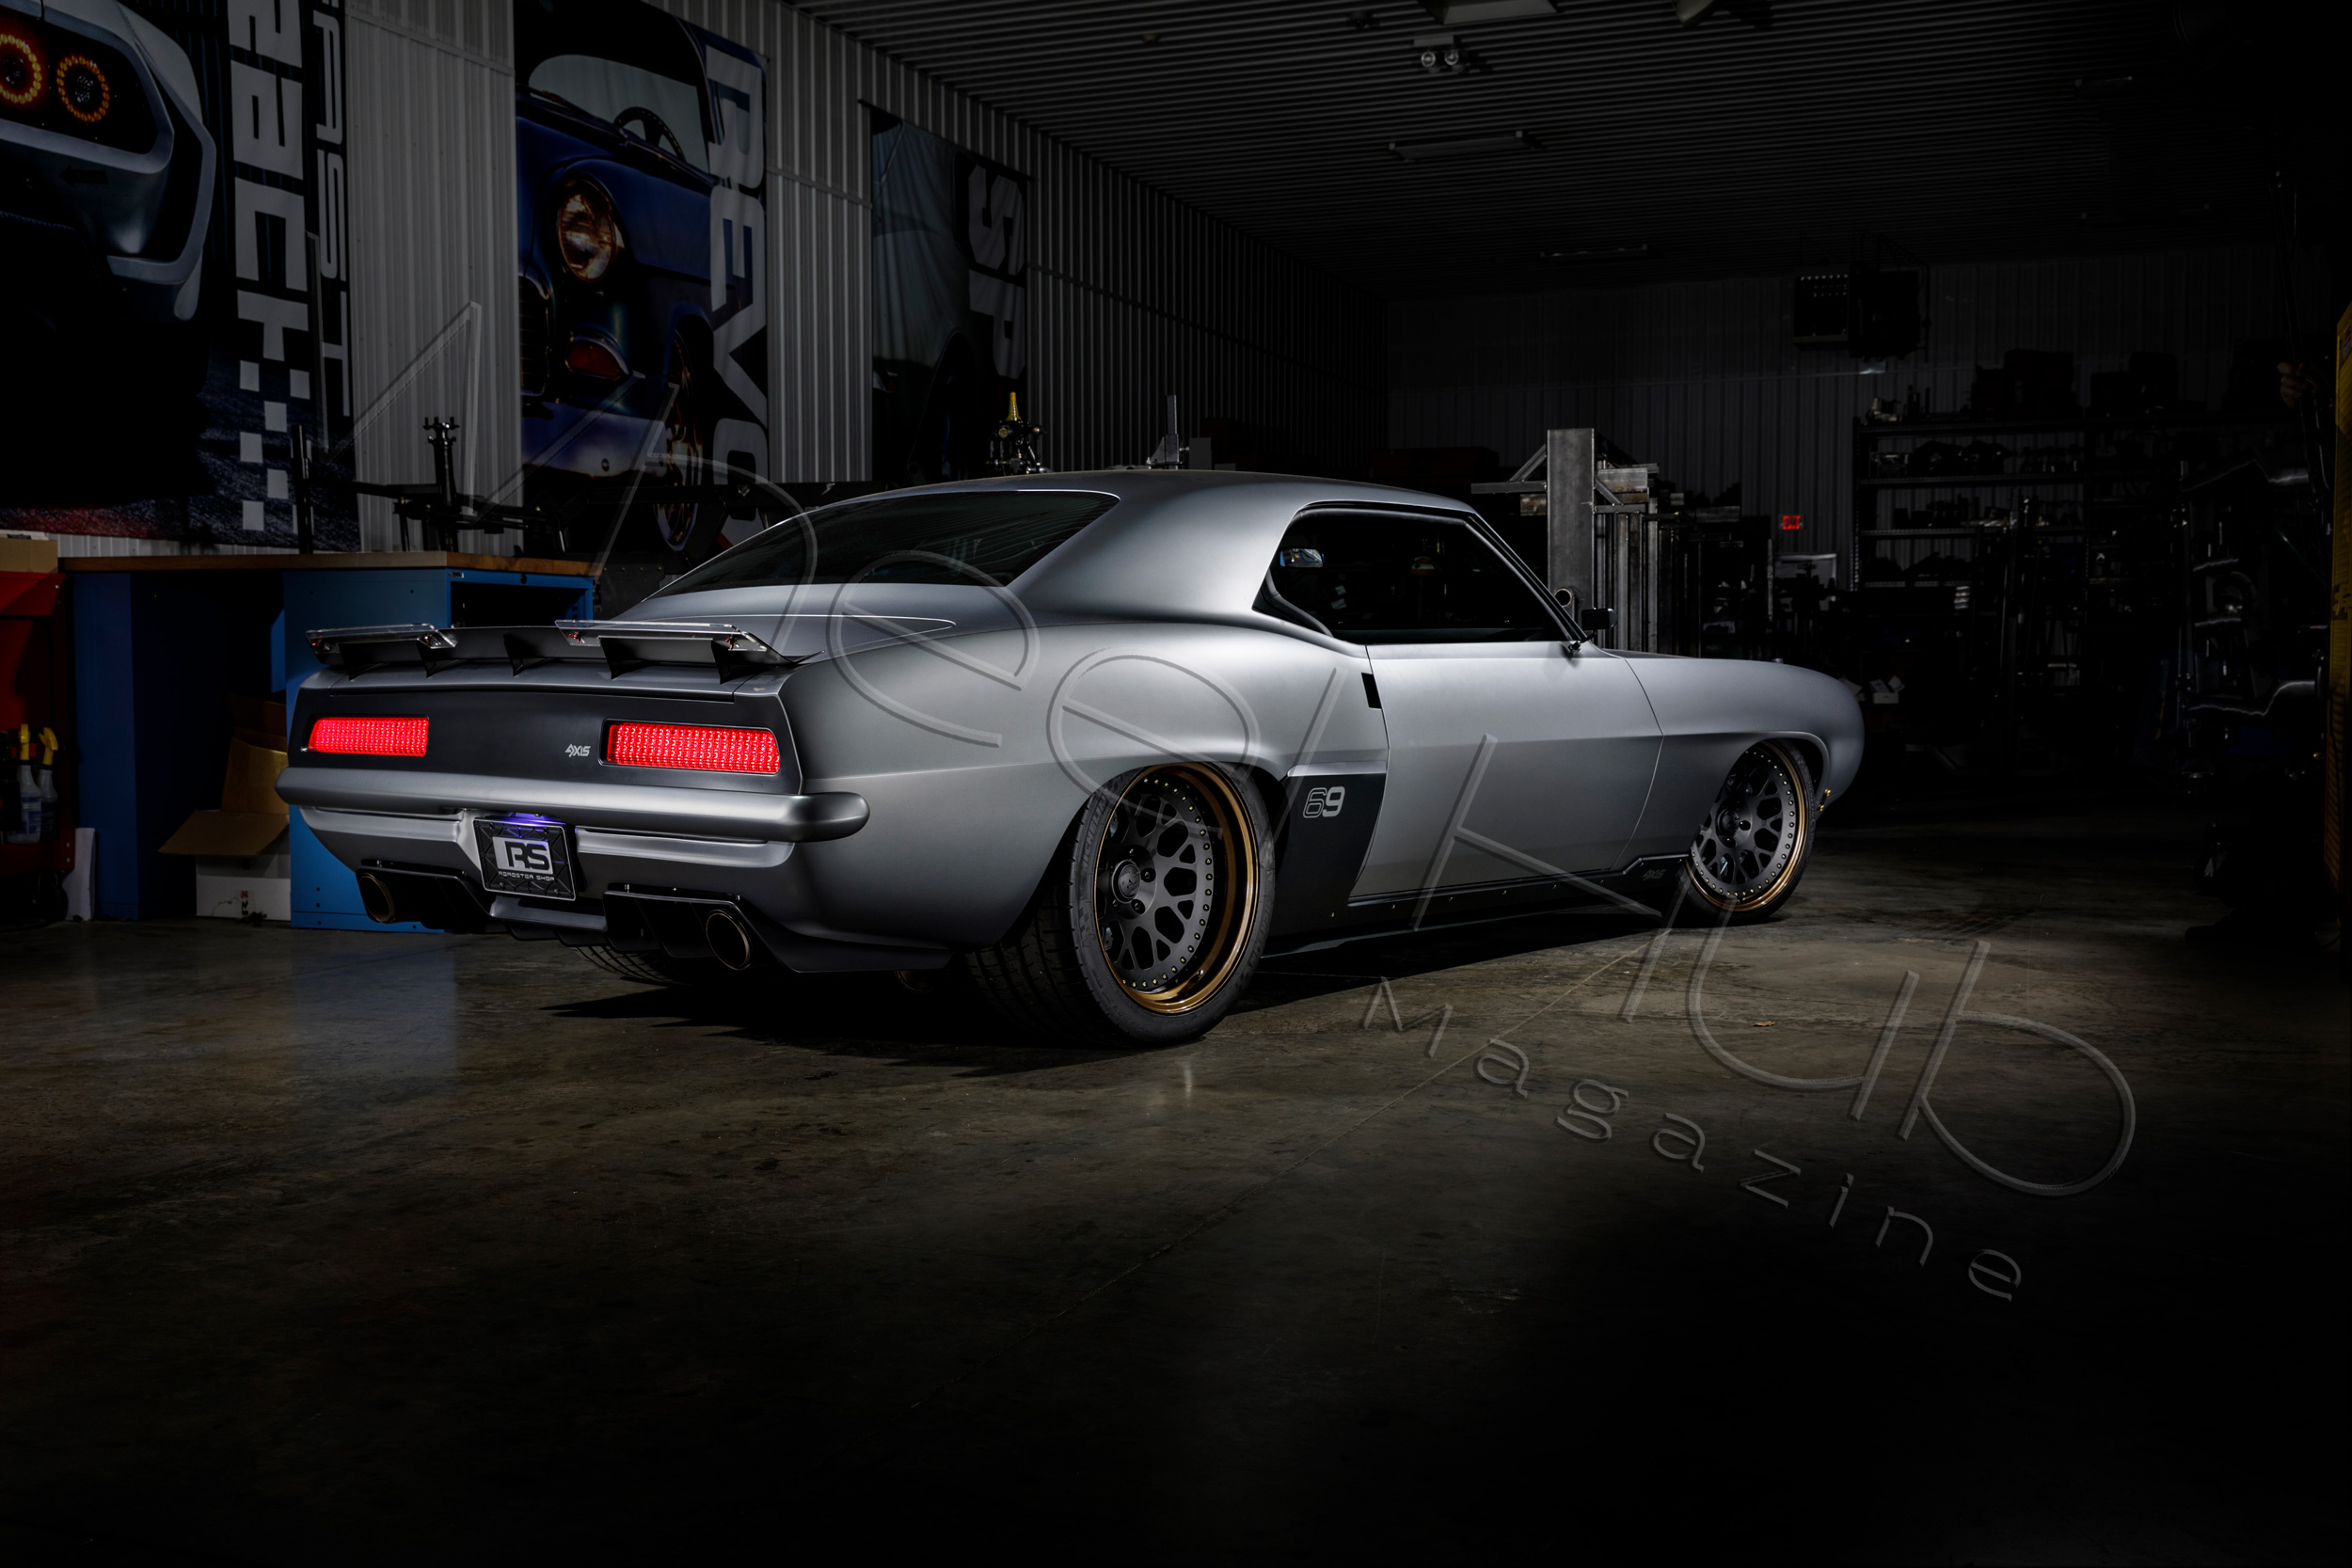 RS_Axis_69Camaro_112117_0744.jpg